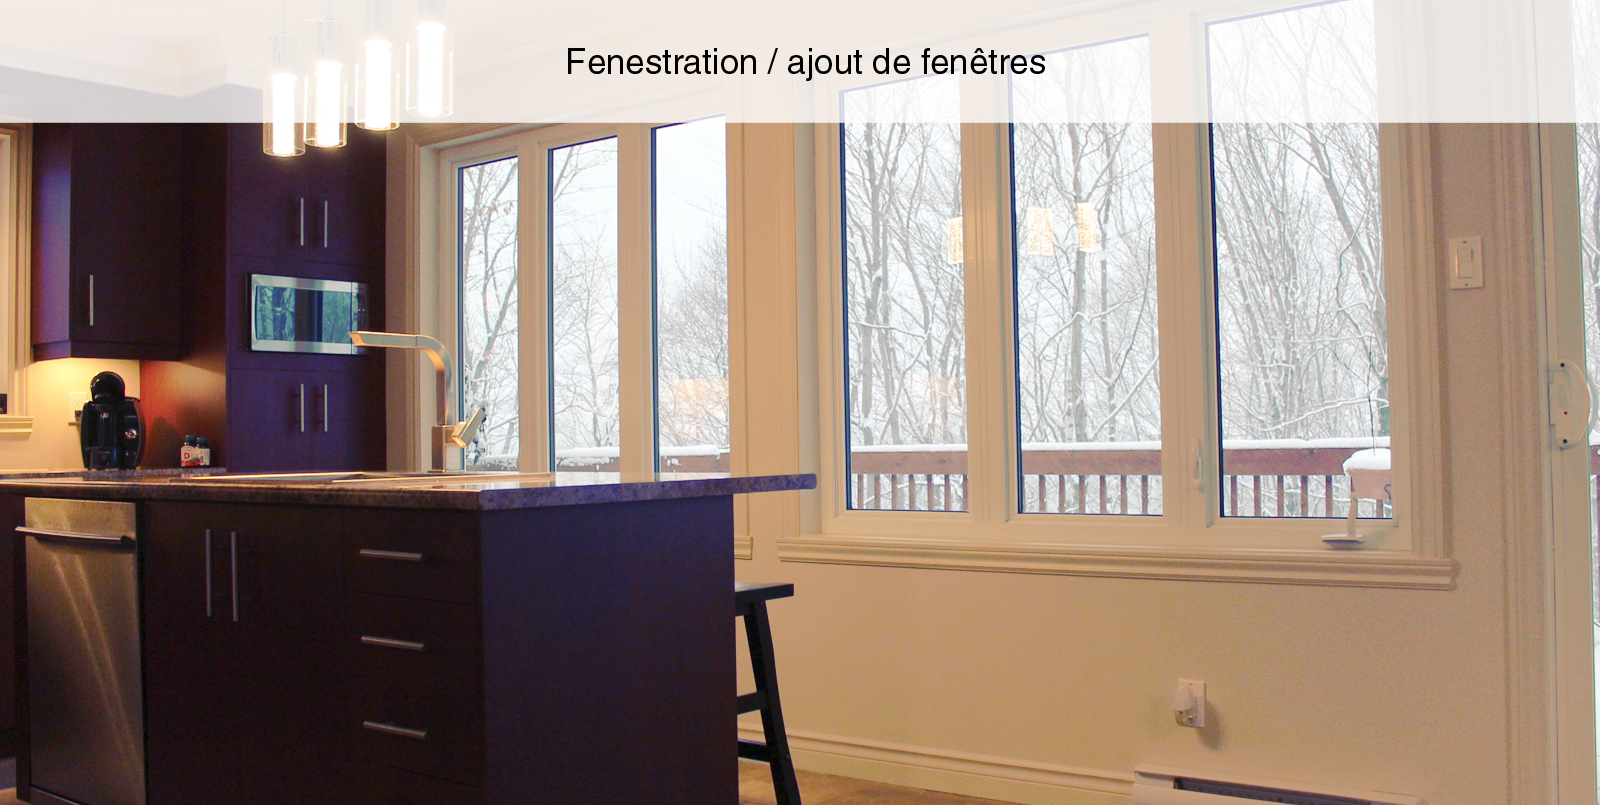 33-1-PANACHE-CONSTRUCTION-RENOVATION-FENESTRATION